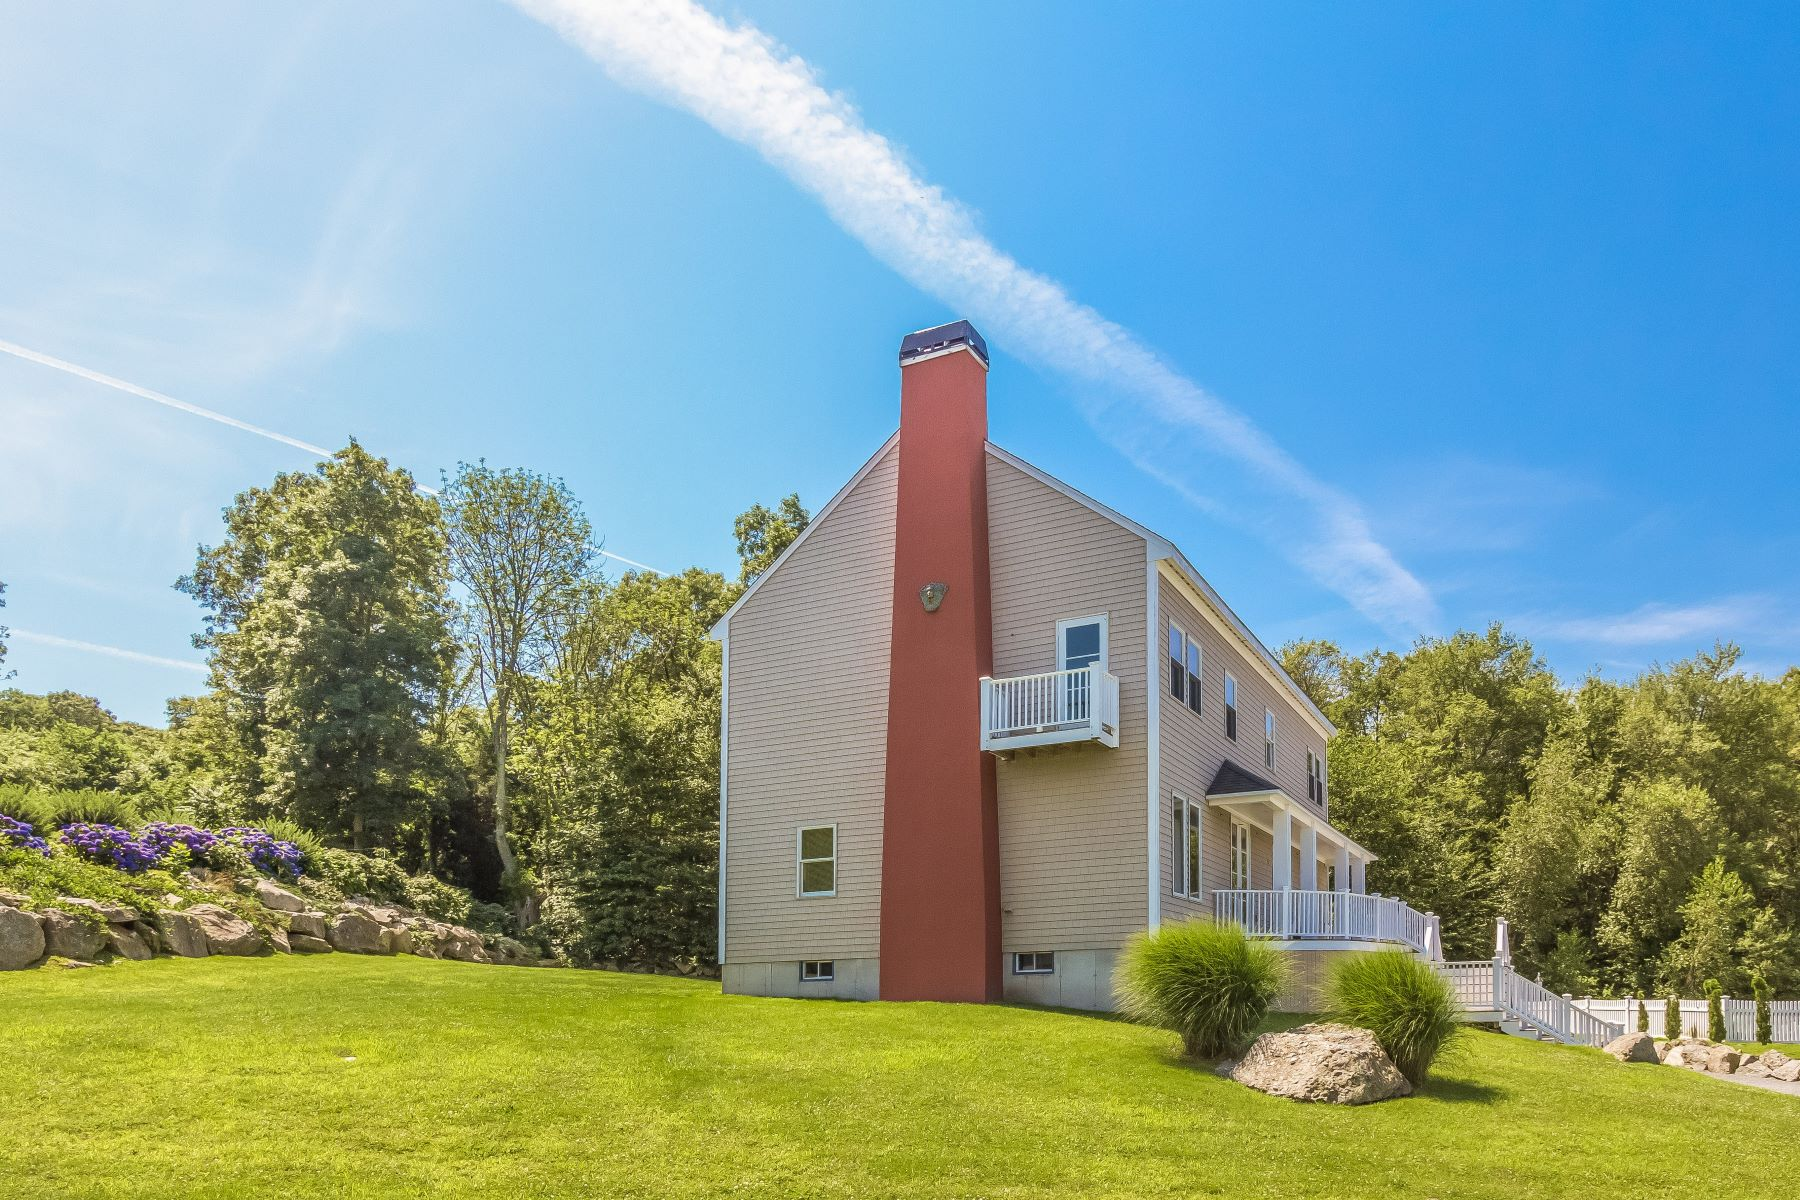 Additional photo for property listing at 'Waterside' 187 Horizon Drive Tiverton, Rhode Island 02878 United States